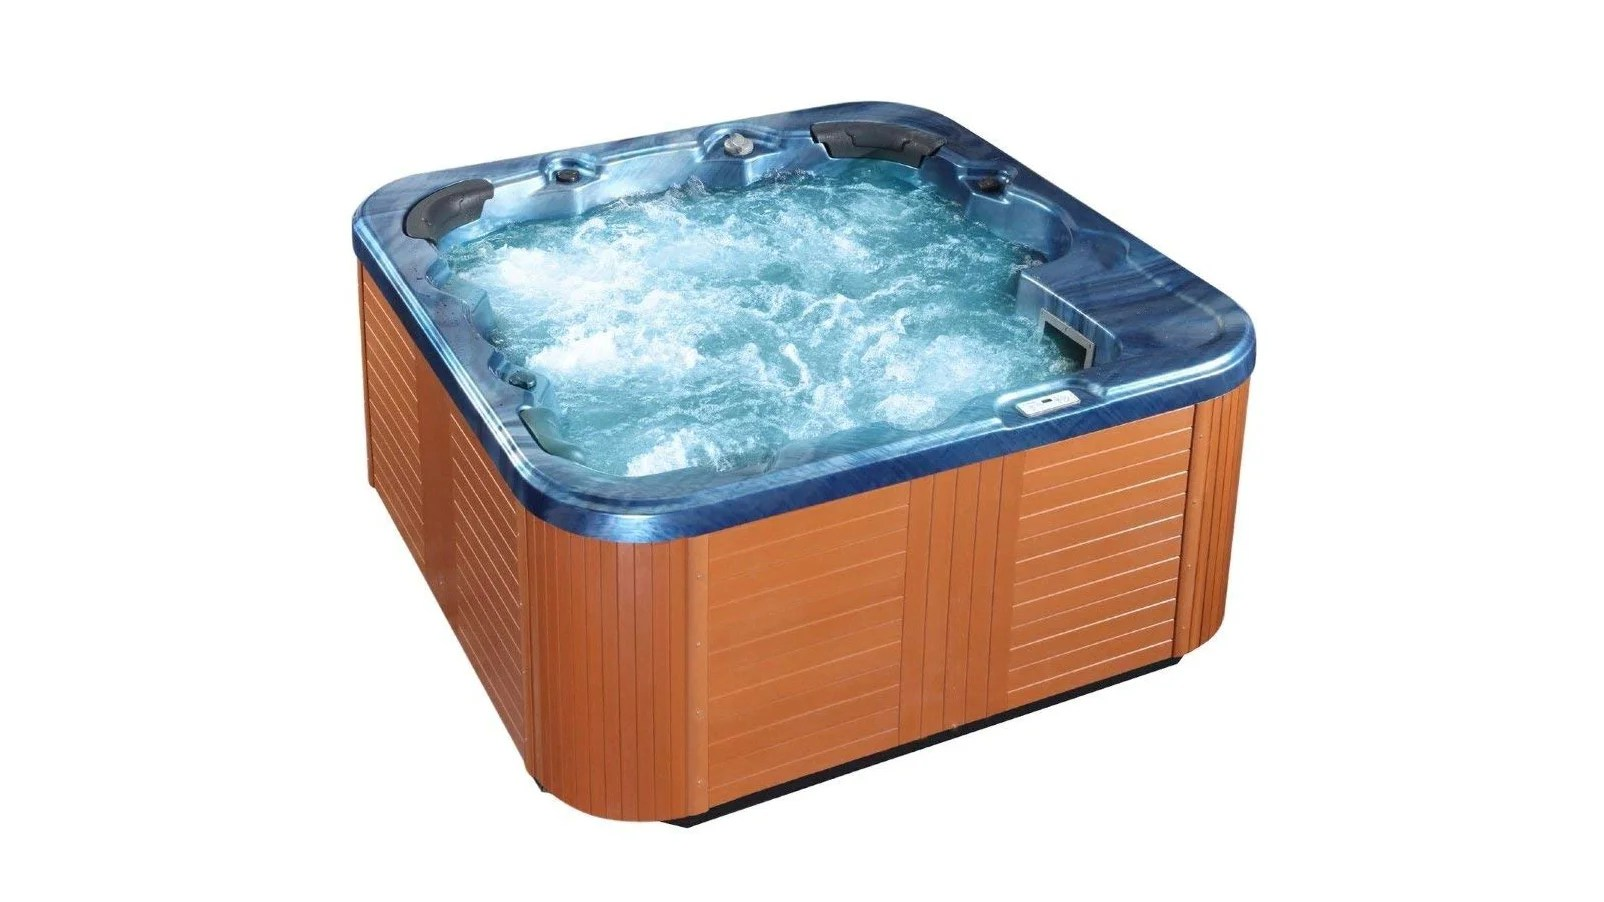 Novel Couchtisch Hamilton Soft Tube Whirlpool